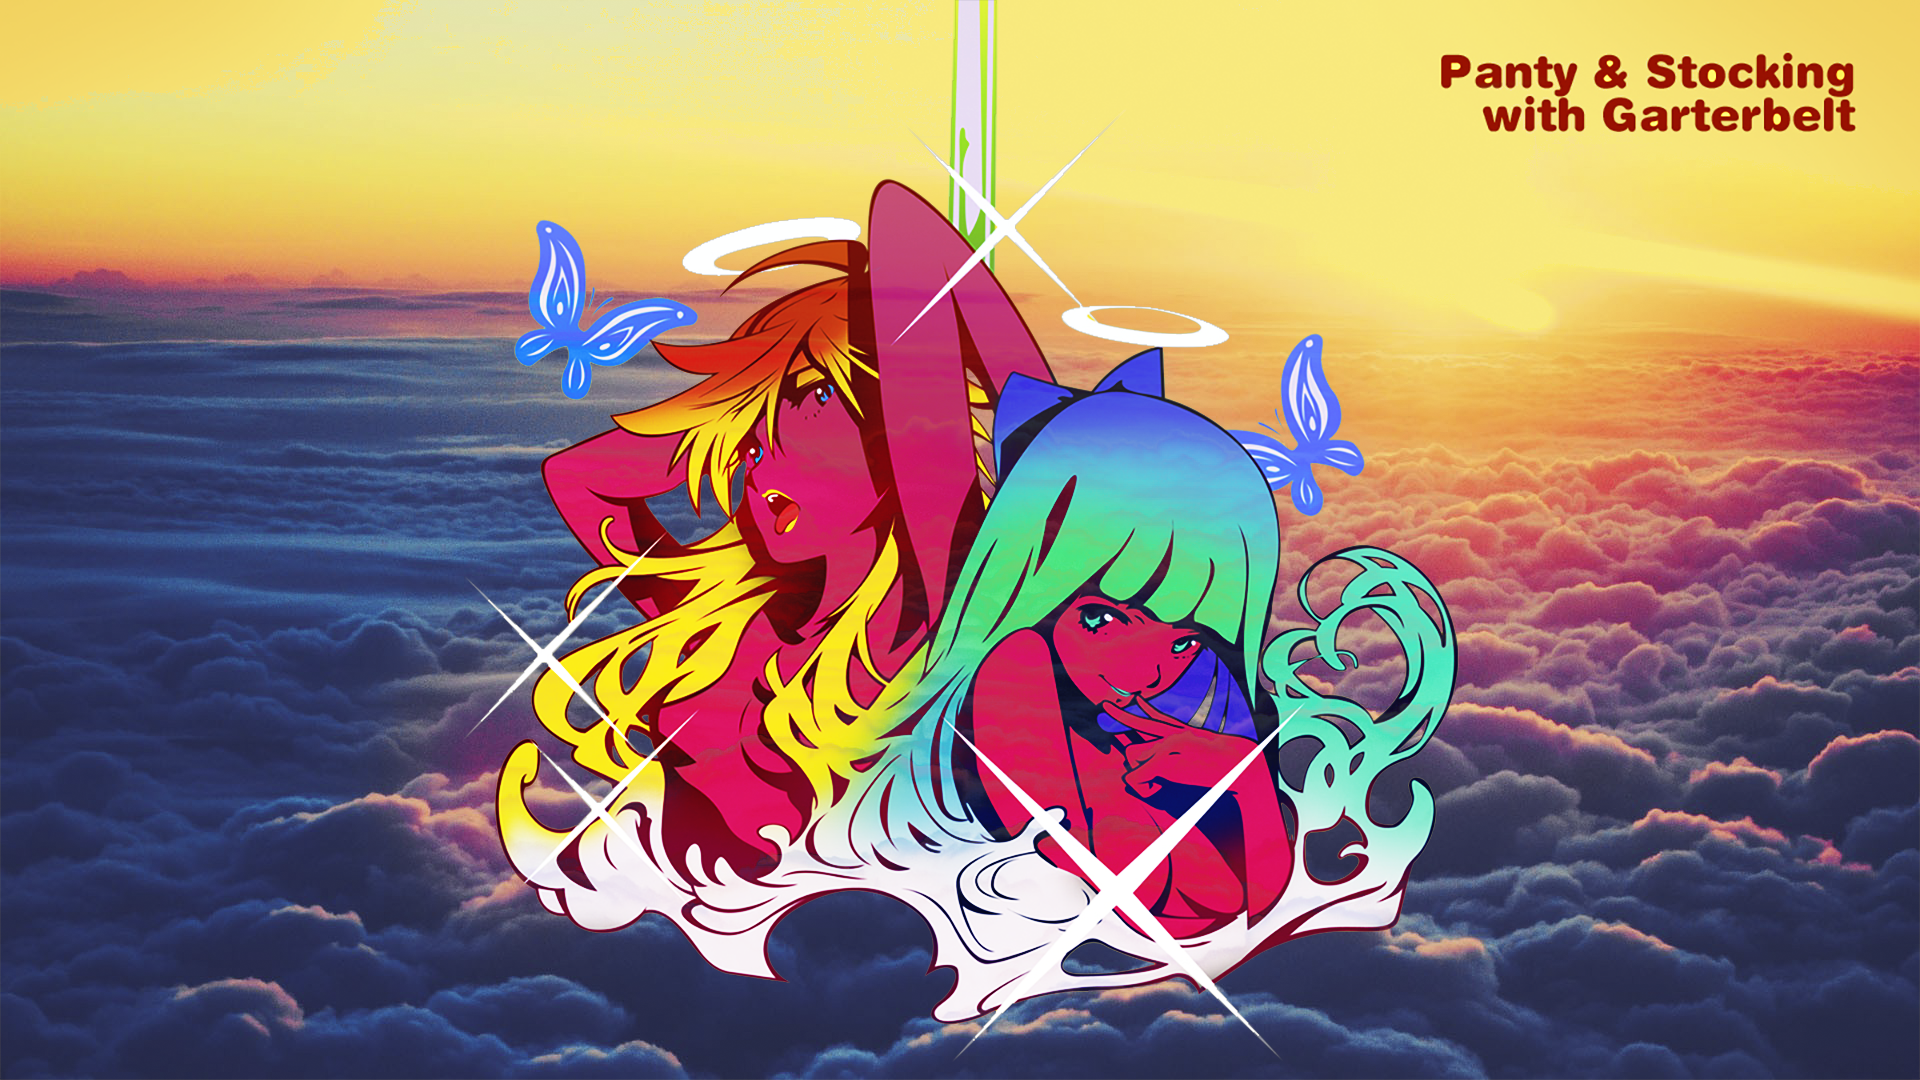 Panty And Stocking Wallpaper Hd Wallpaper From Gallsource